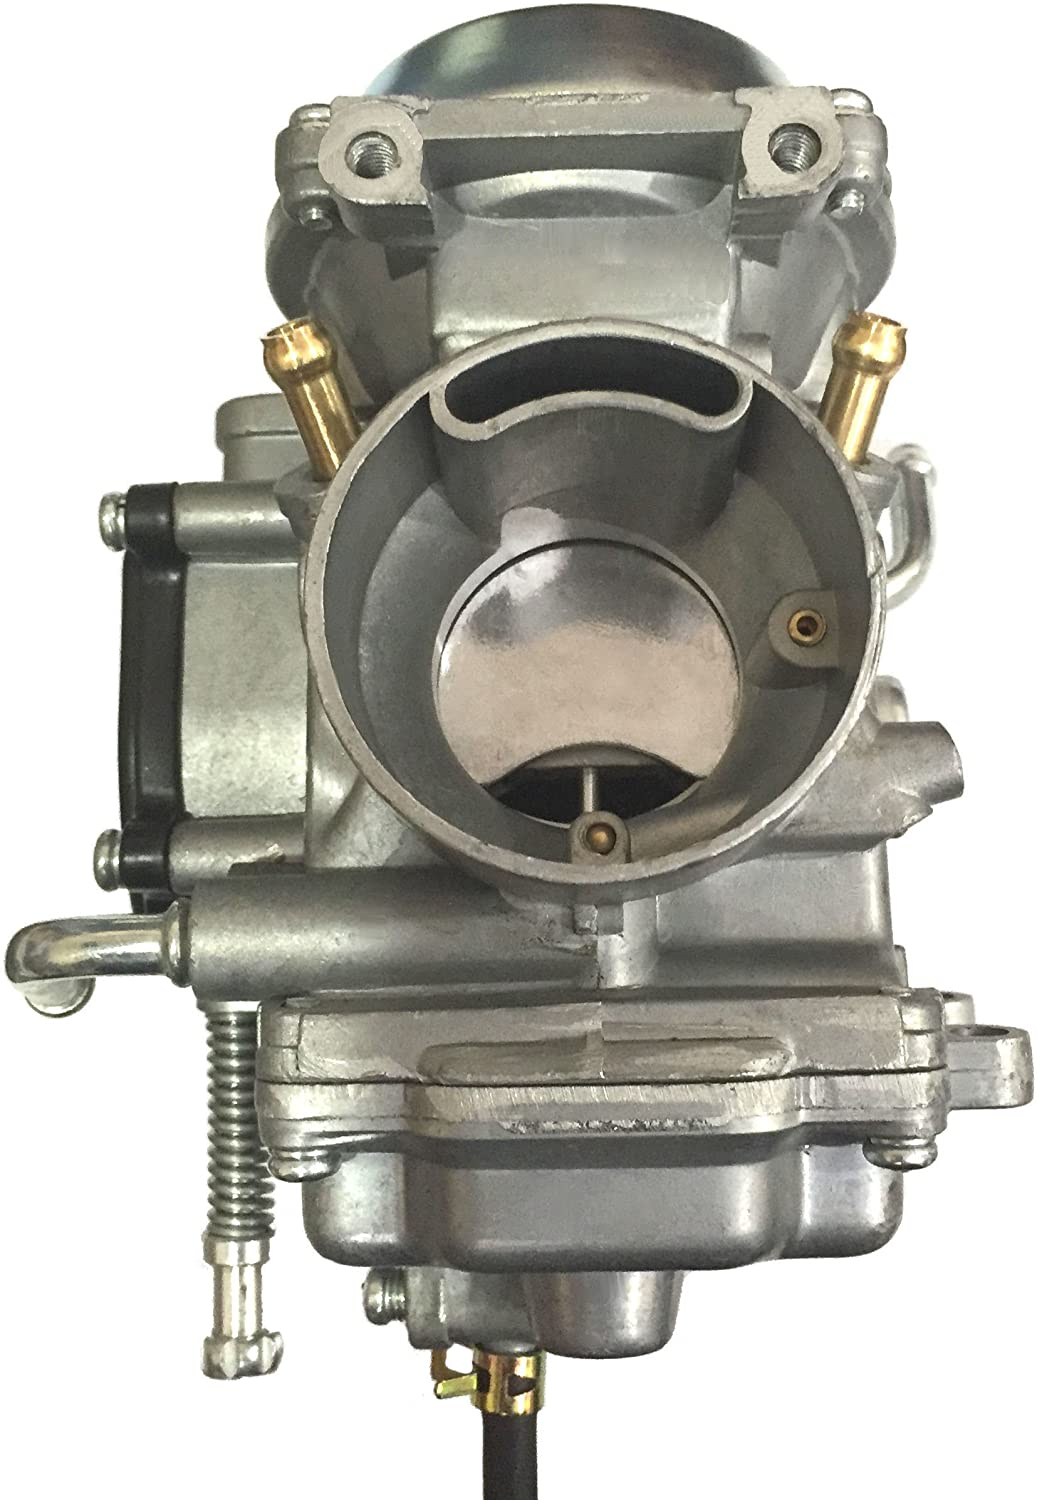 2004 Polaris Scrambler 500 Carburetor Adjustment